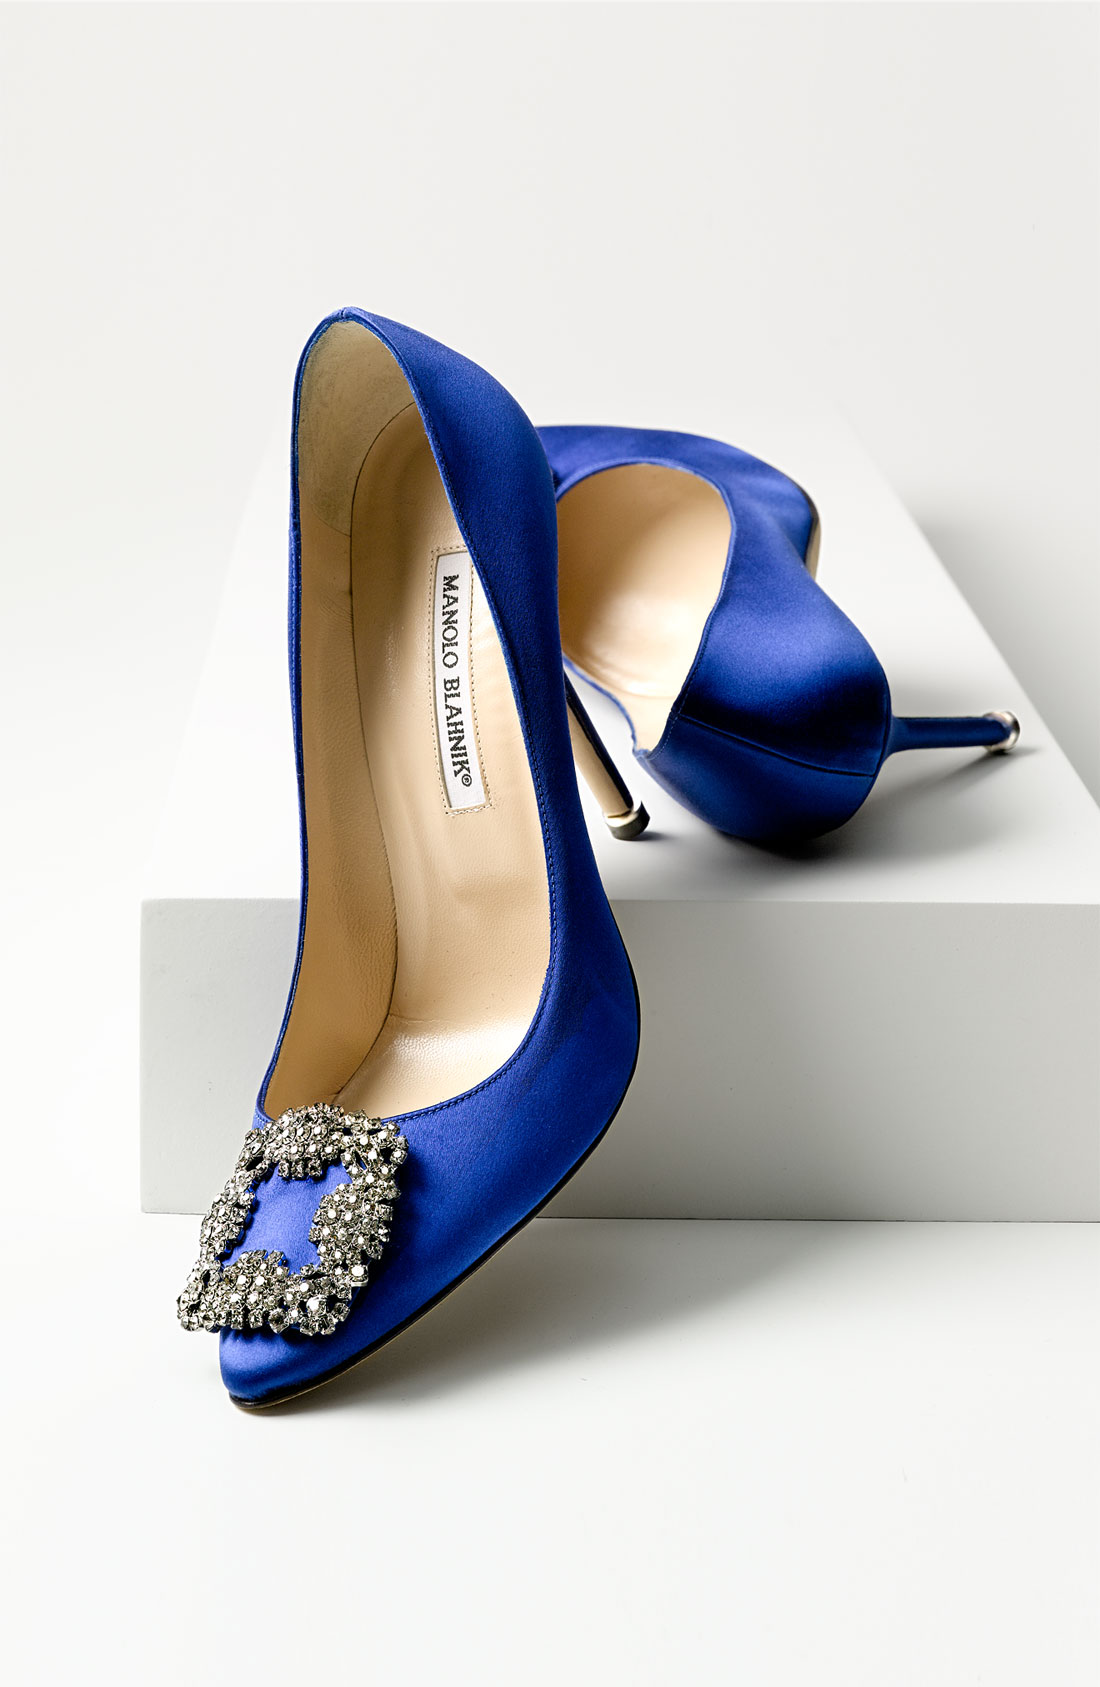 manolo-blahnik-blue-satin-hangisi-jeweled-pump-product-2-9612186-393692168.jpeg